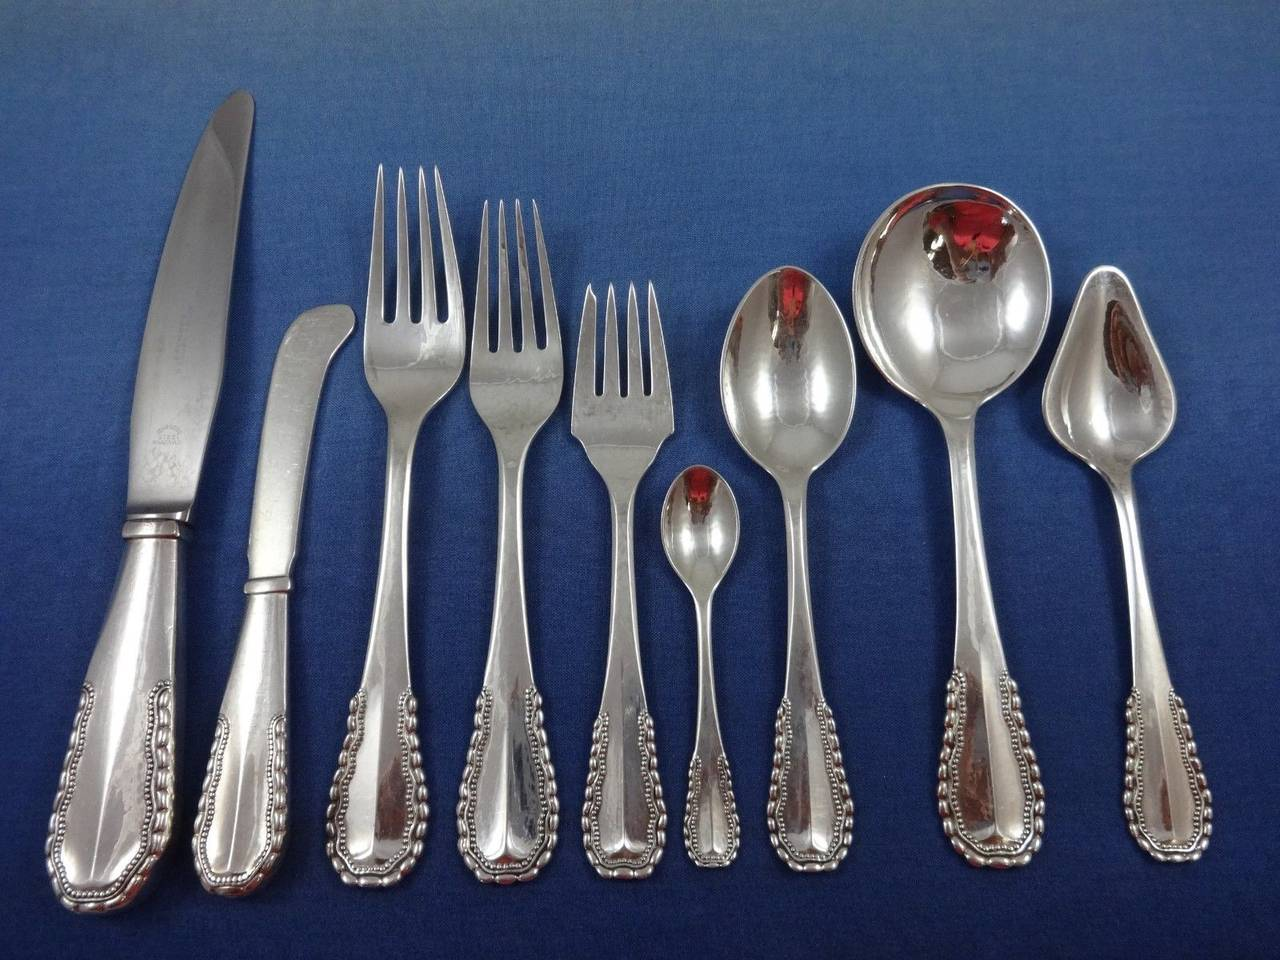 Viking by georg jensen sterling silver flatware set of 77 pieces danish for sale at 1stdibs - Unusual flatware sets ...